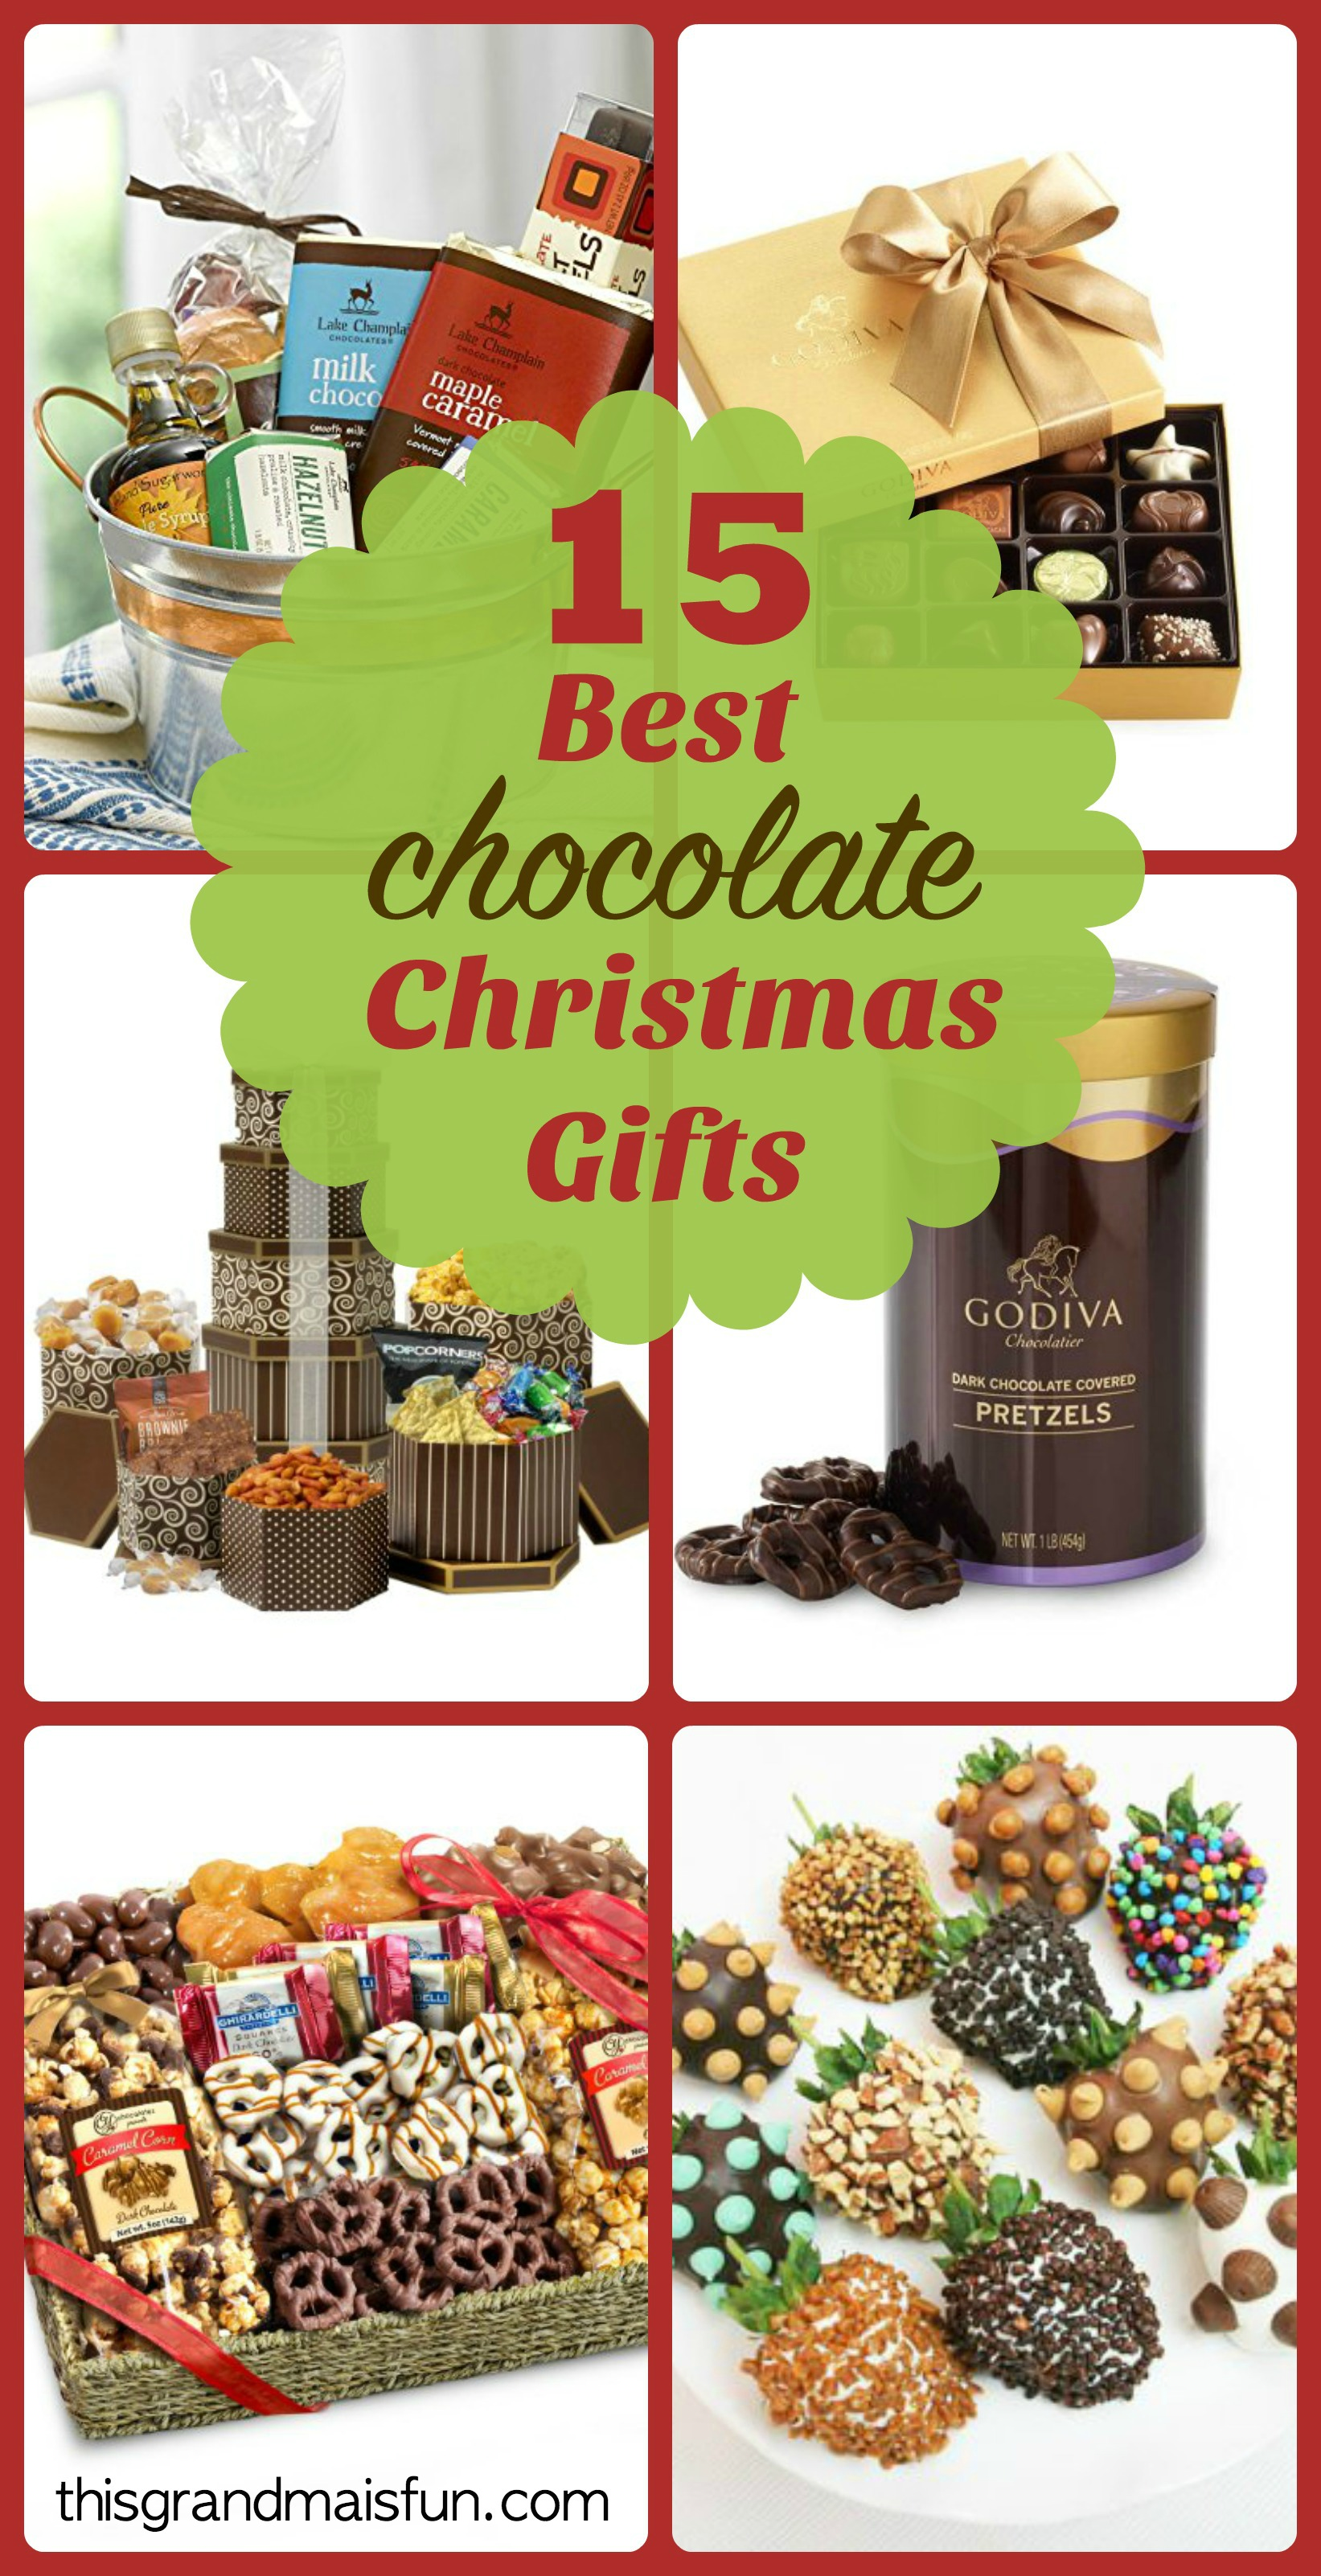 15 Best Chocolate Christmas Gifts - TGIF - This Grandma is Fun